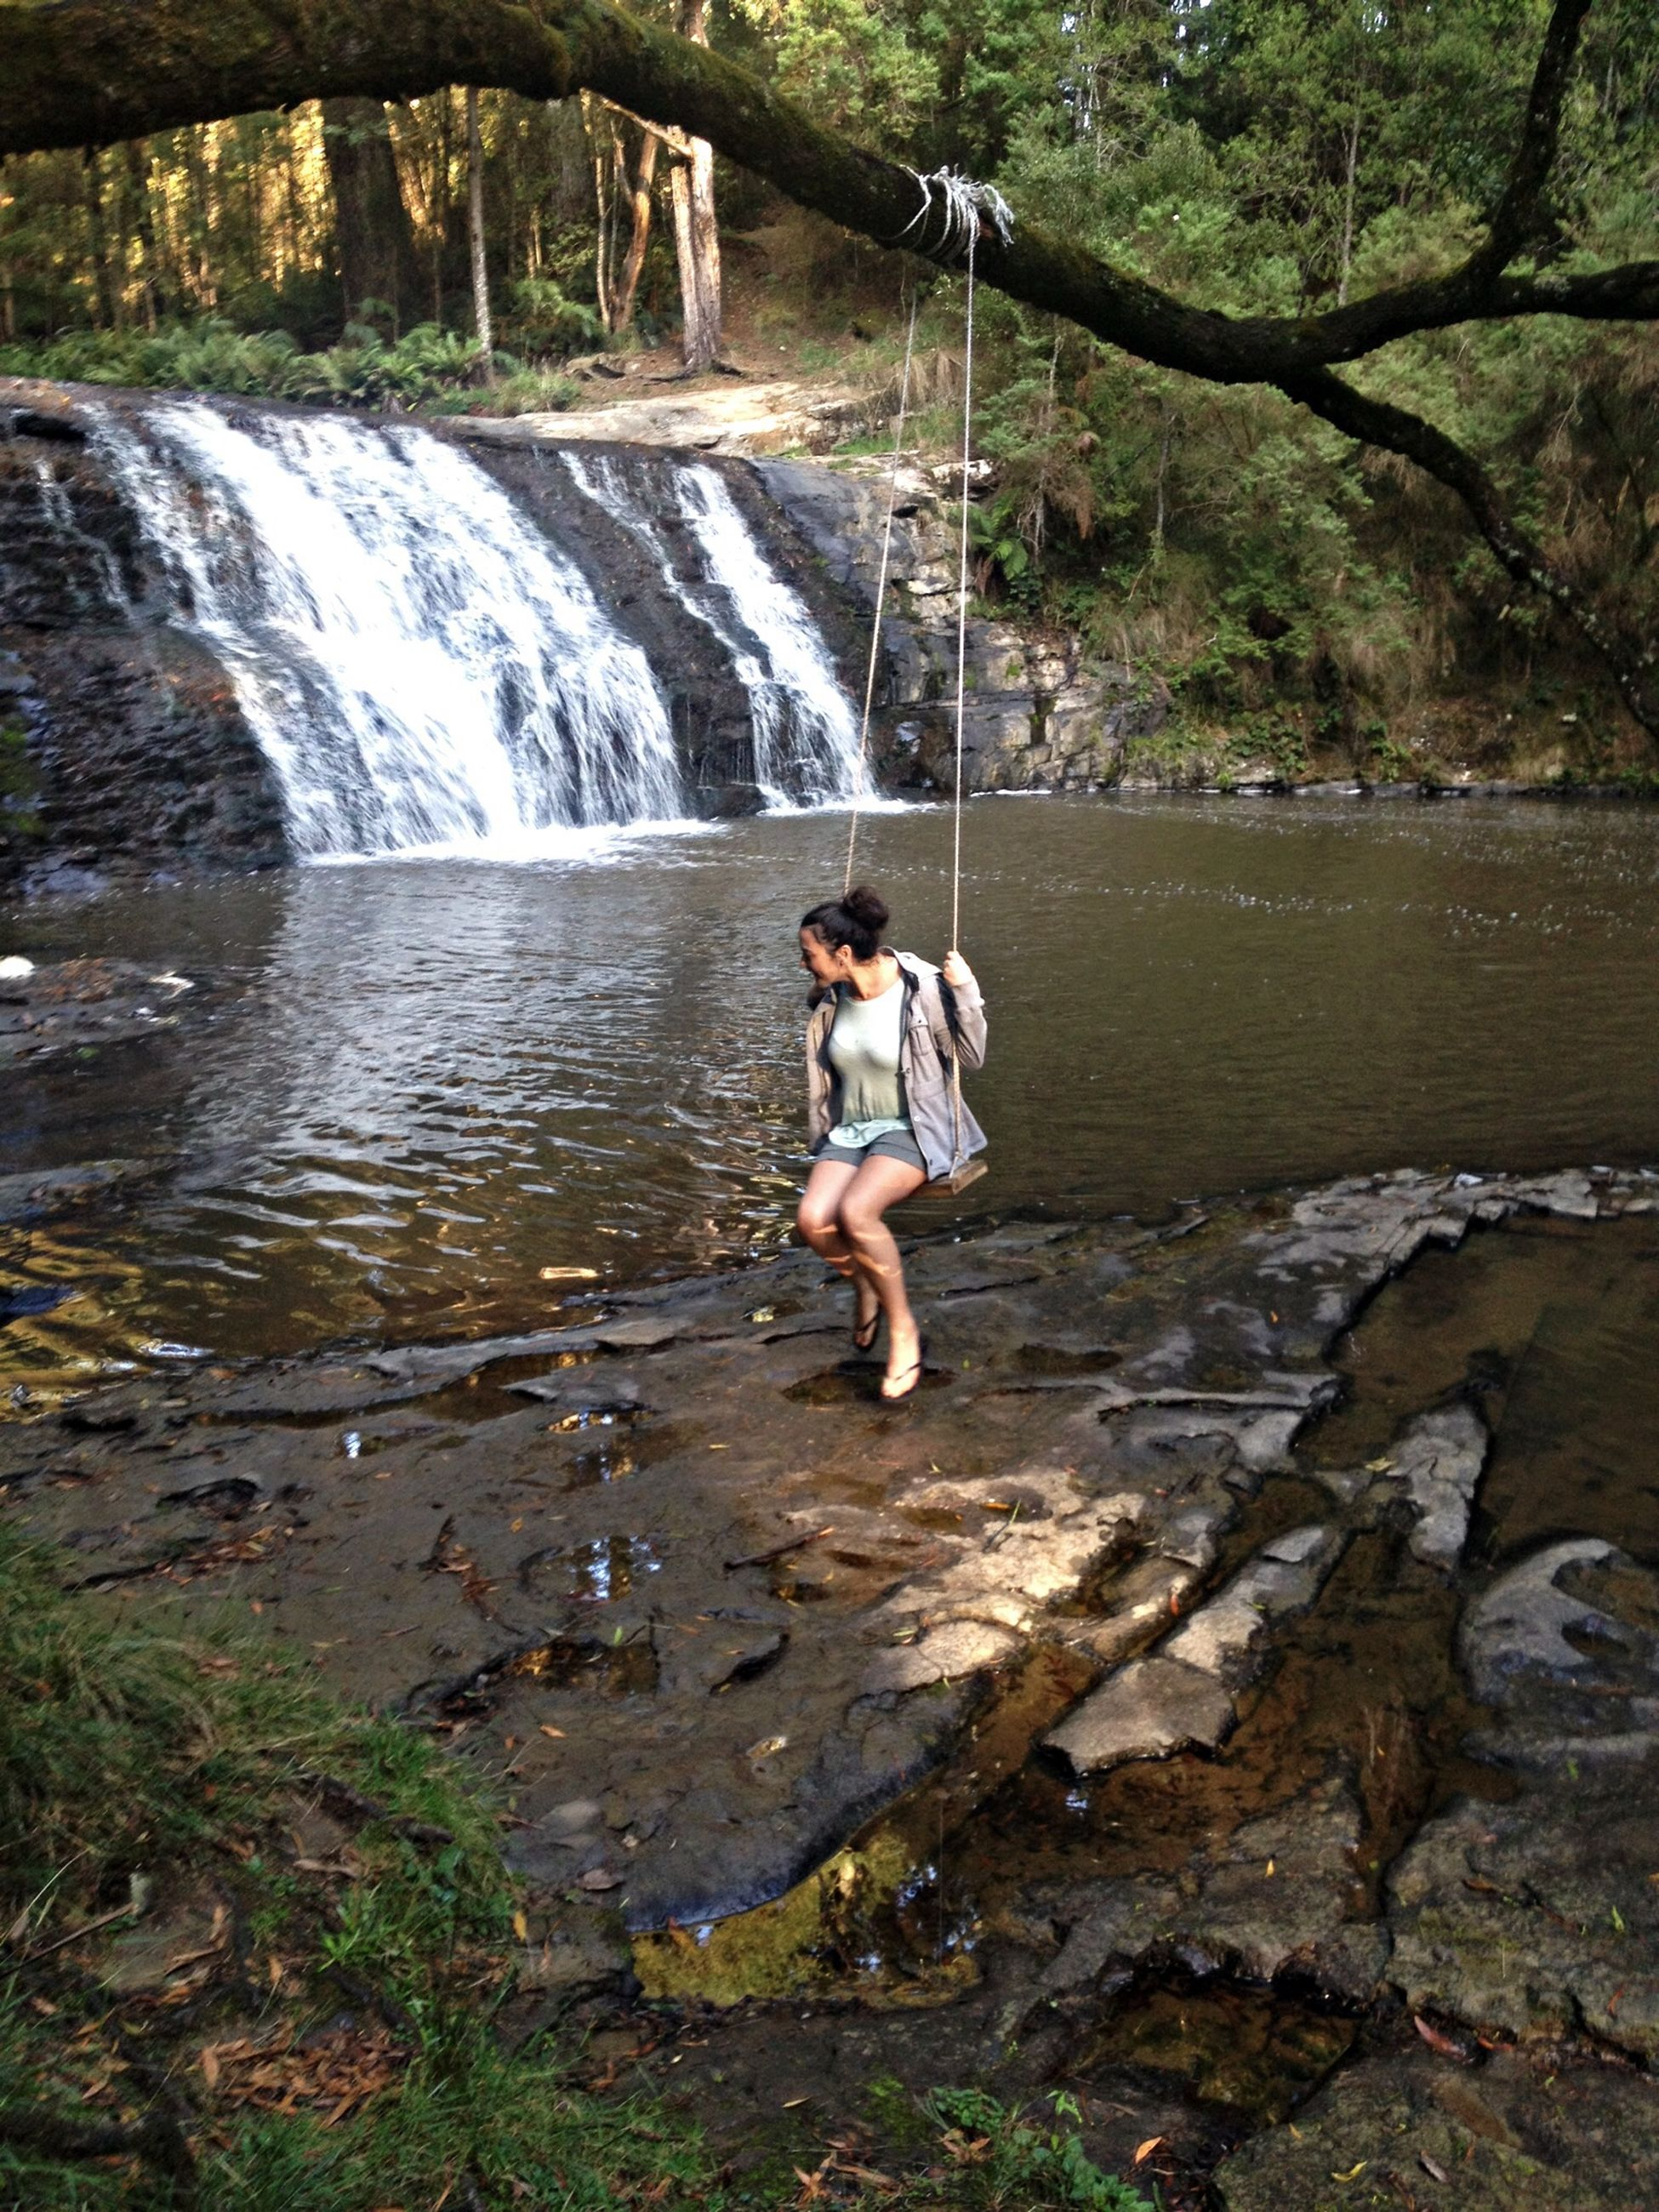 water, full length, lifestyles, leisure activity, casual clothing, rock - object, standing, motion, person, young adult, nature, rear view, river, forest, day, flowing water, elementary age, waterfall